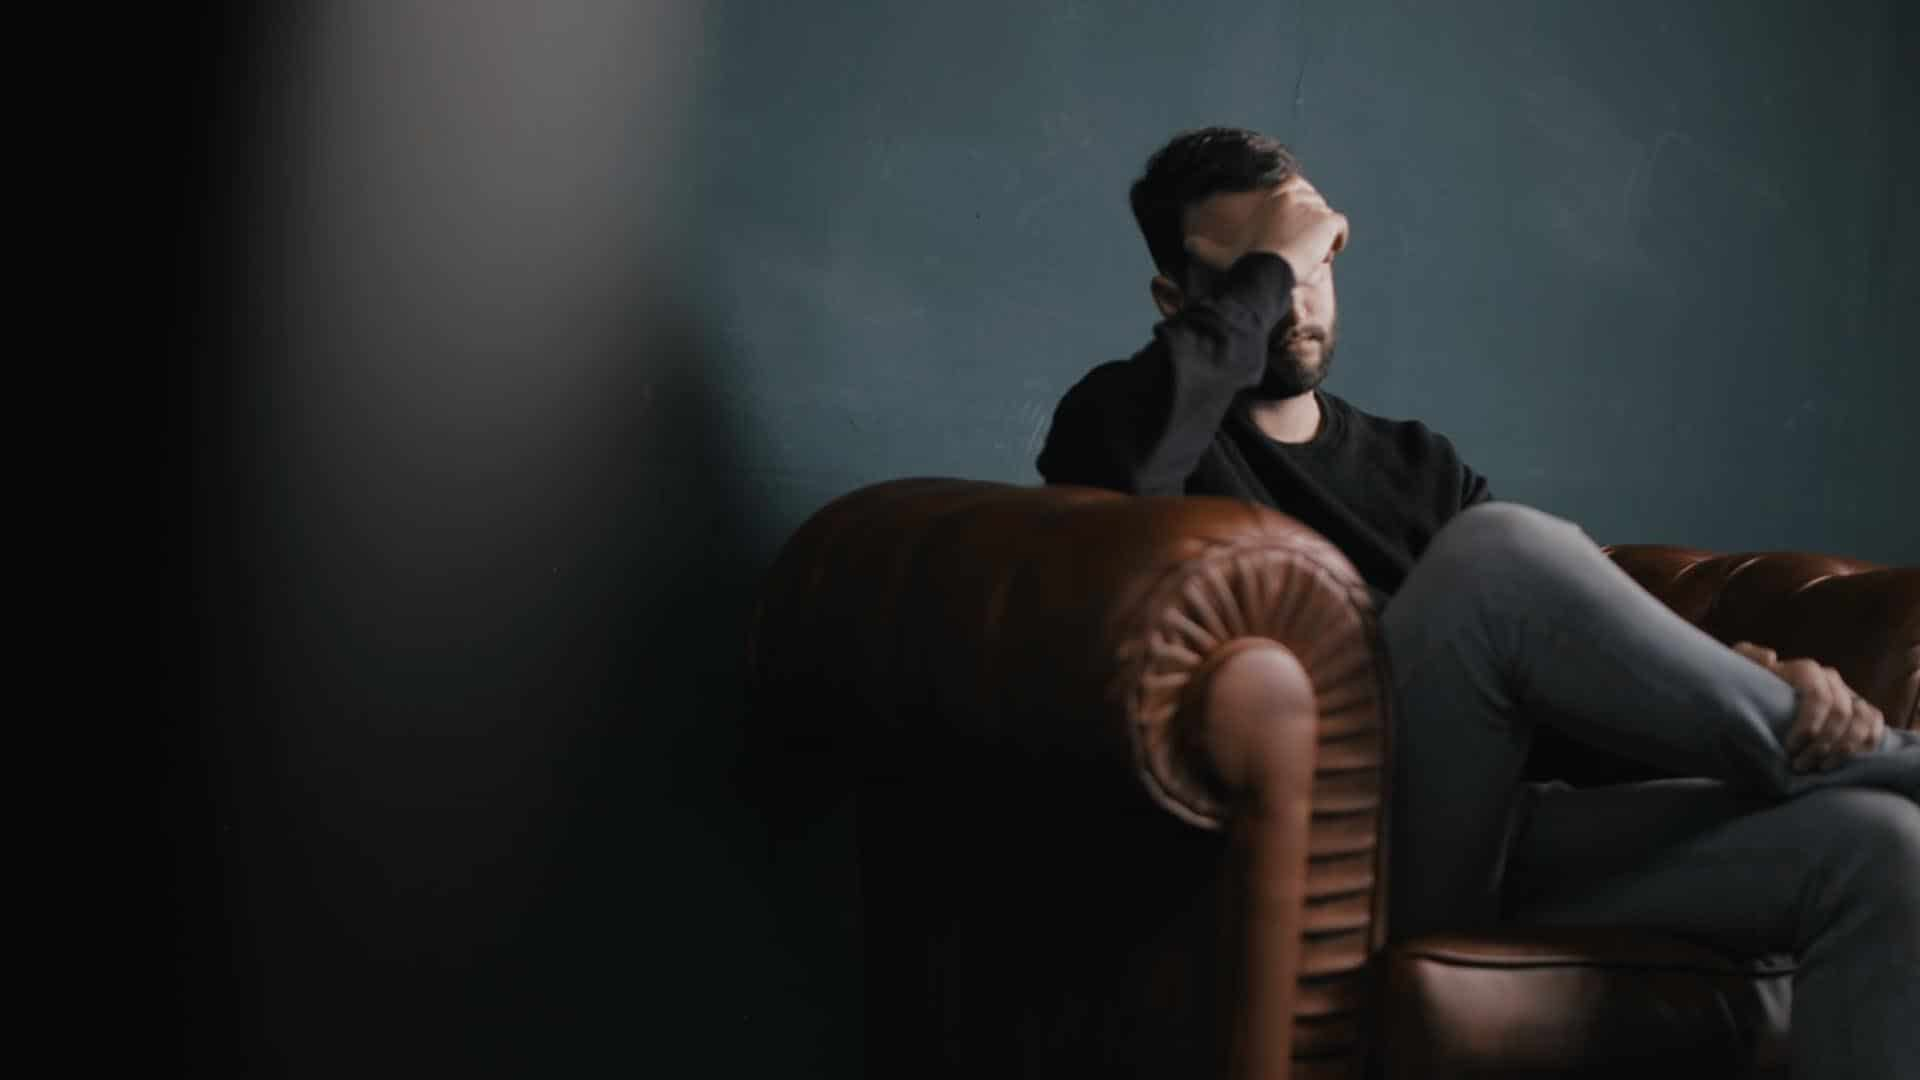 Car Accidents And Depression: Can I Sue for a Motor Vehicle Accident's Effect On My Mental Health?